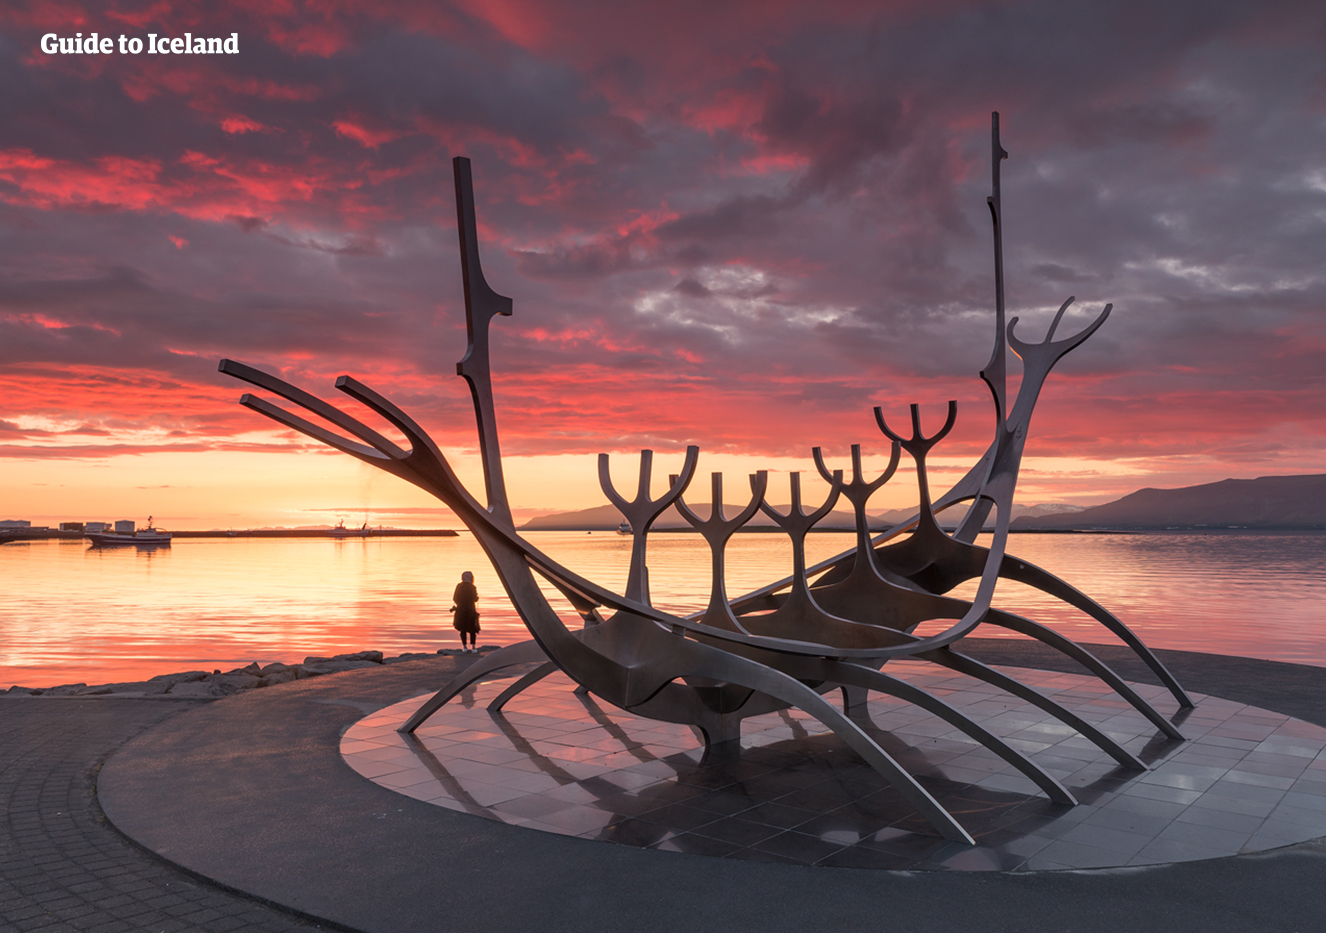 The Sun Voyager Monument sits on the shore of Reykjavik, not far from the Harpa Concert Hall.